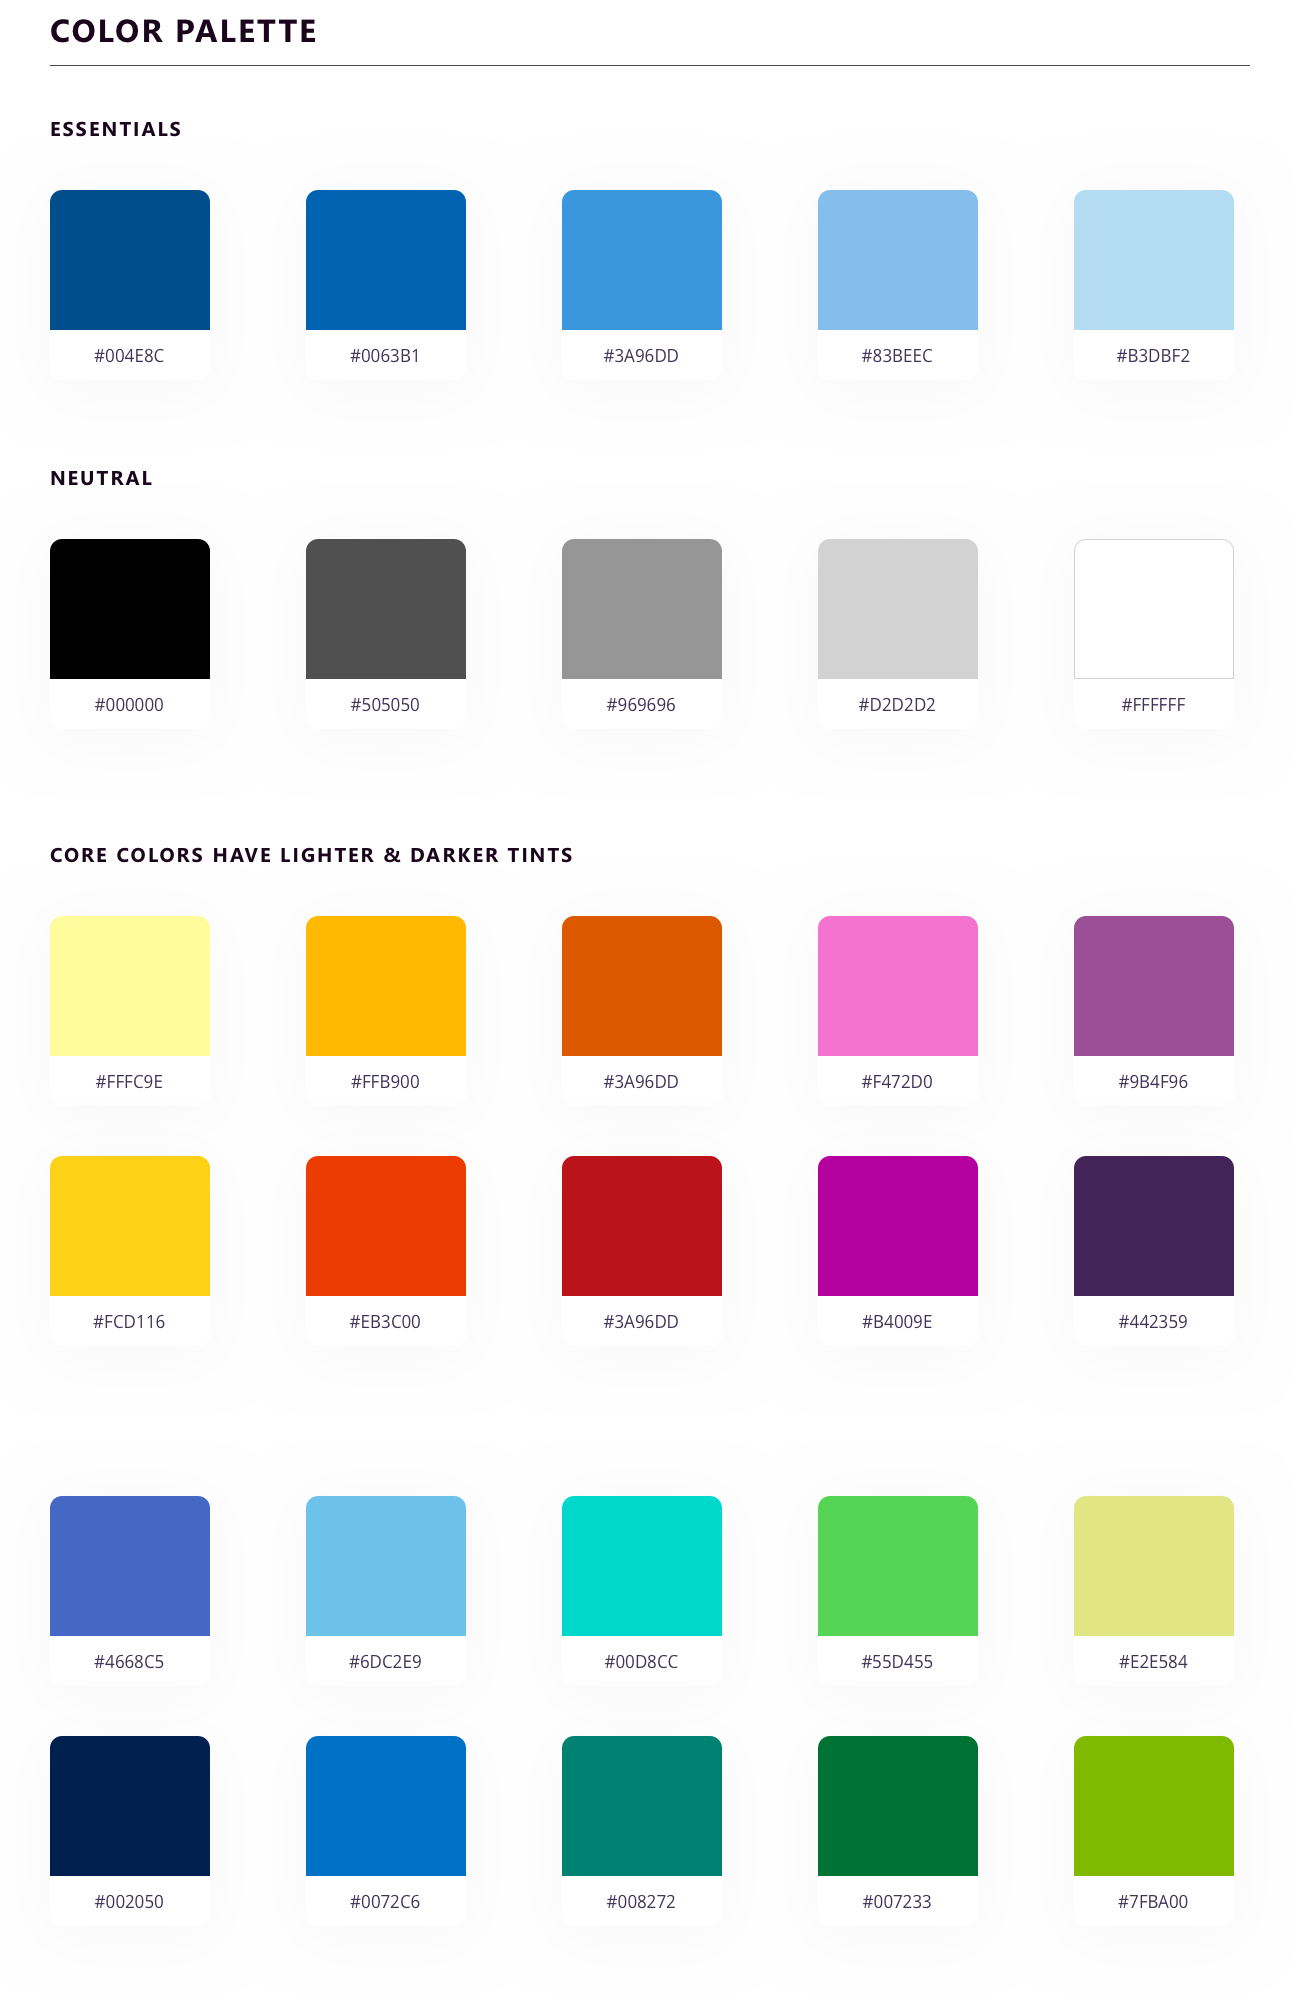 MS_styleGuide-01_ColorPalette.png